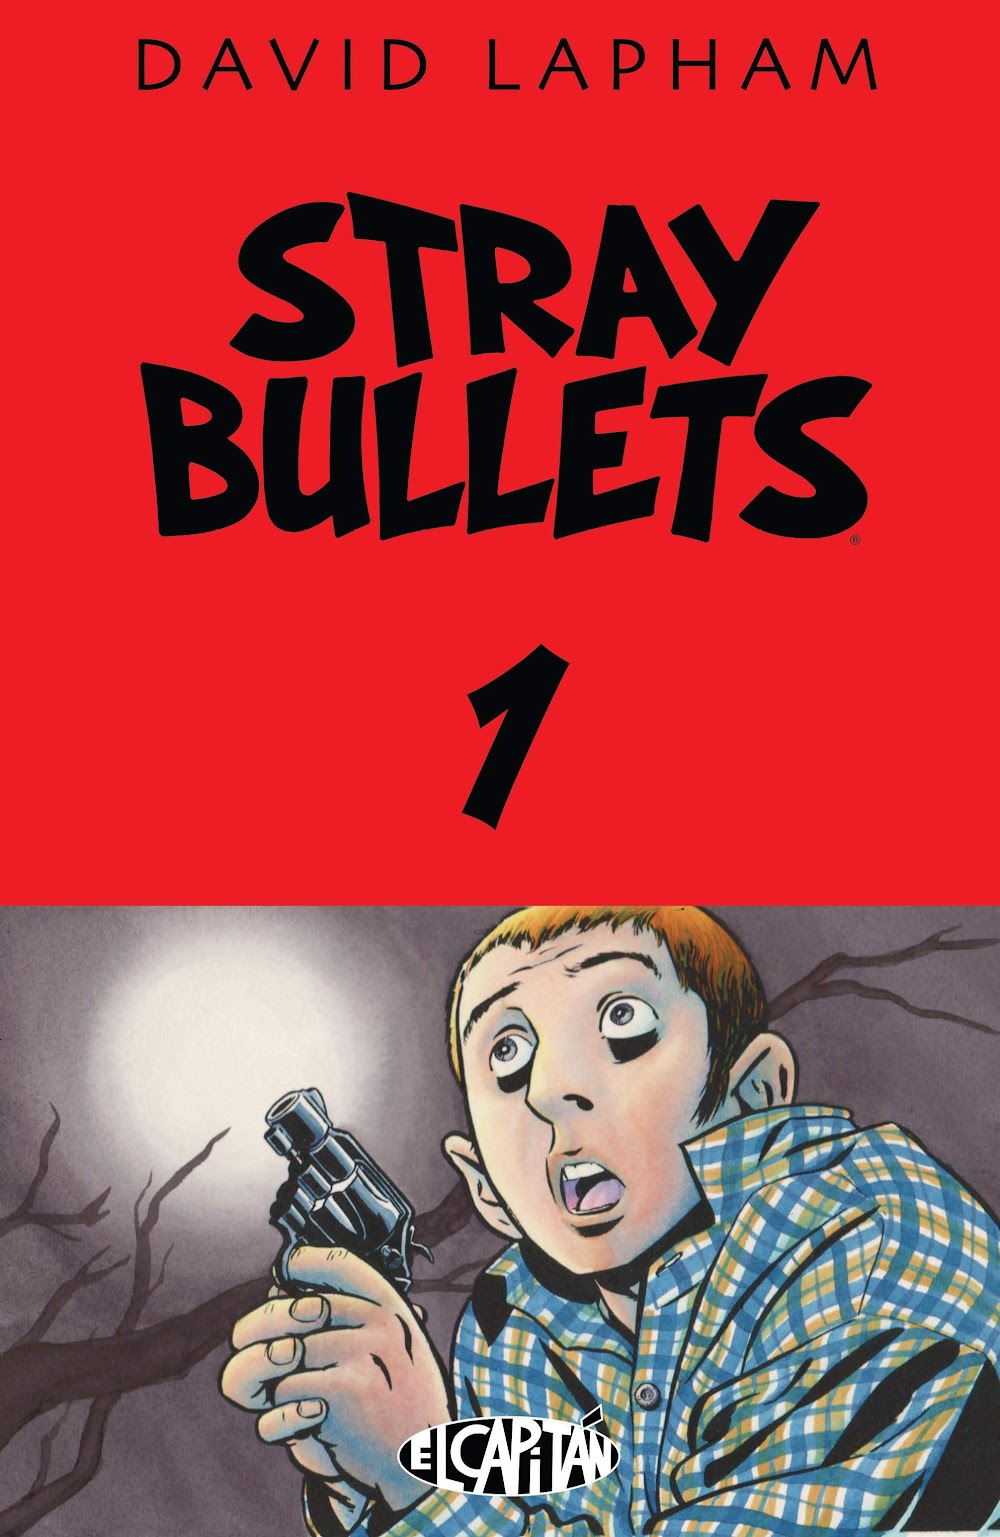 Stray Bullets (1995) - complete